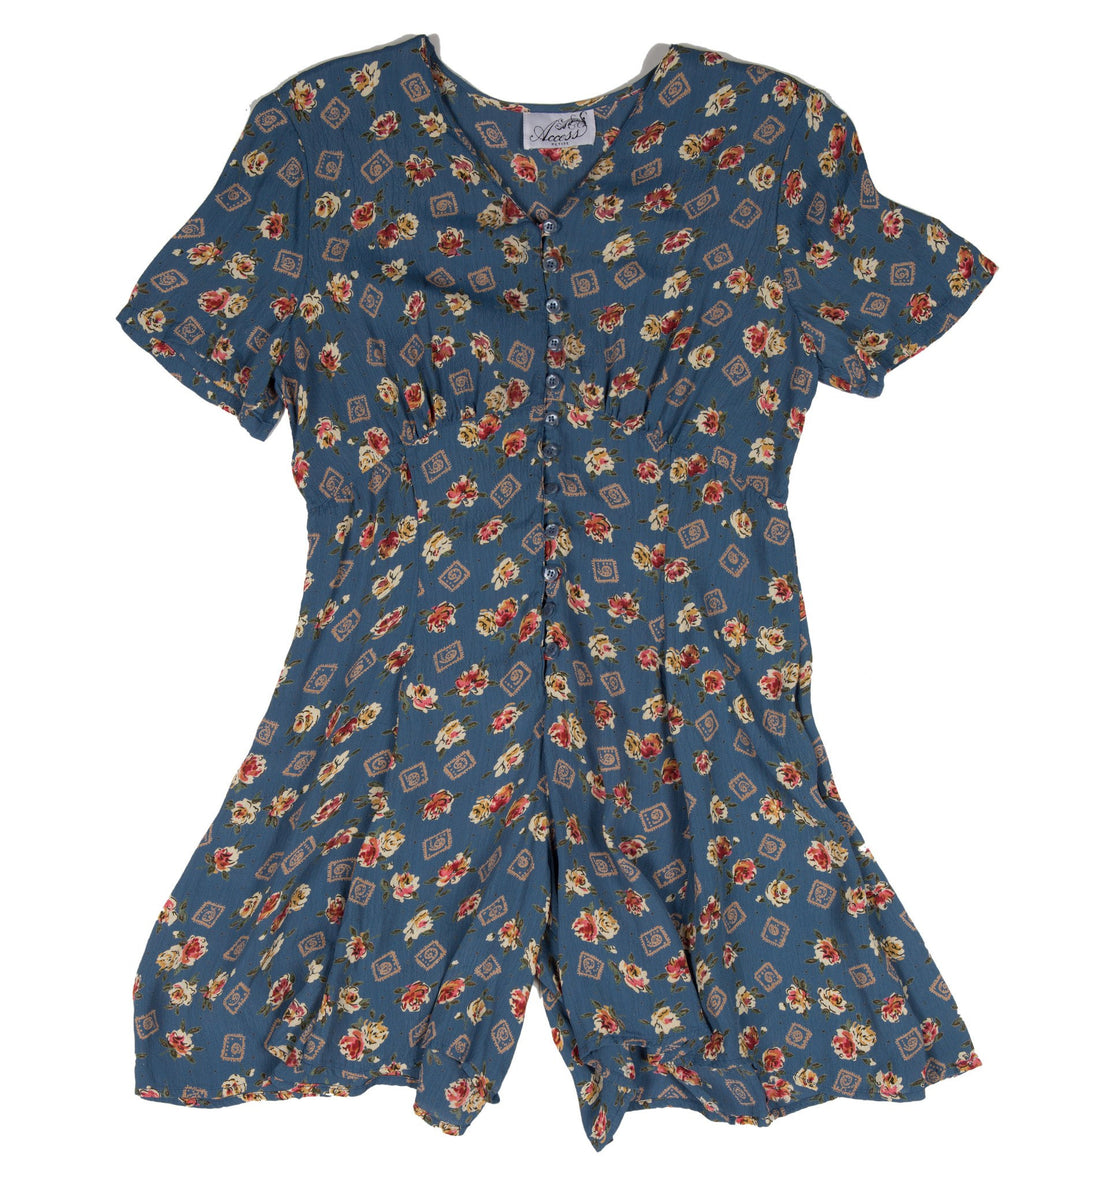 Vintage Blue&Micro Floral Short Romper - Vintage: Women's: Apparel - Iron and Resin